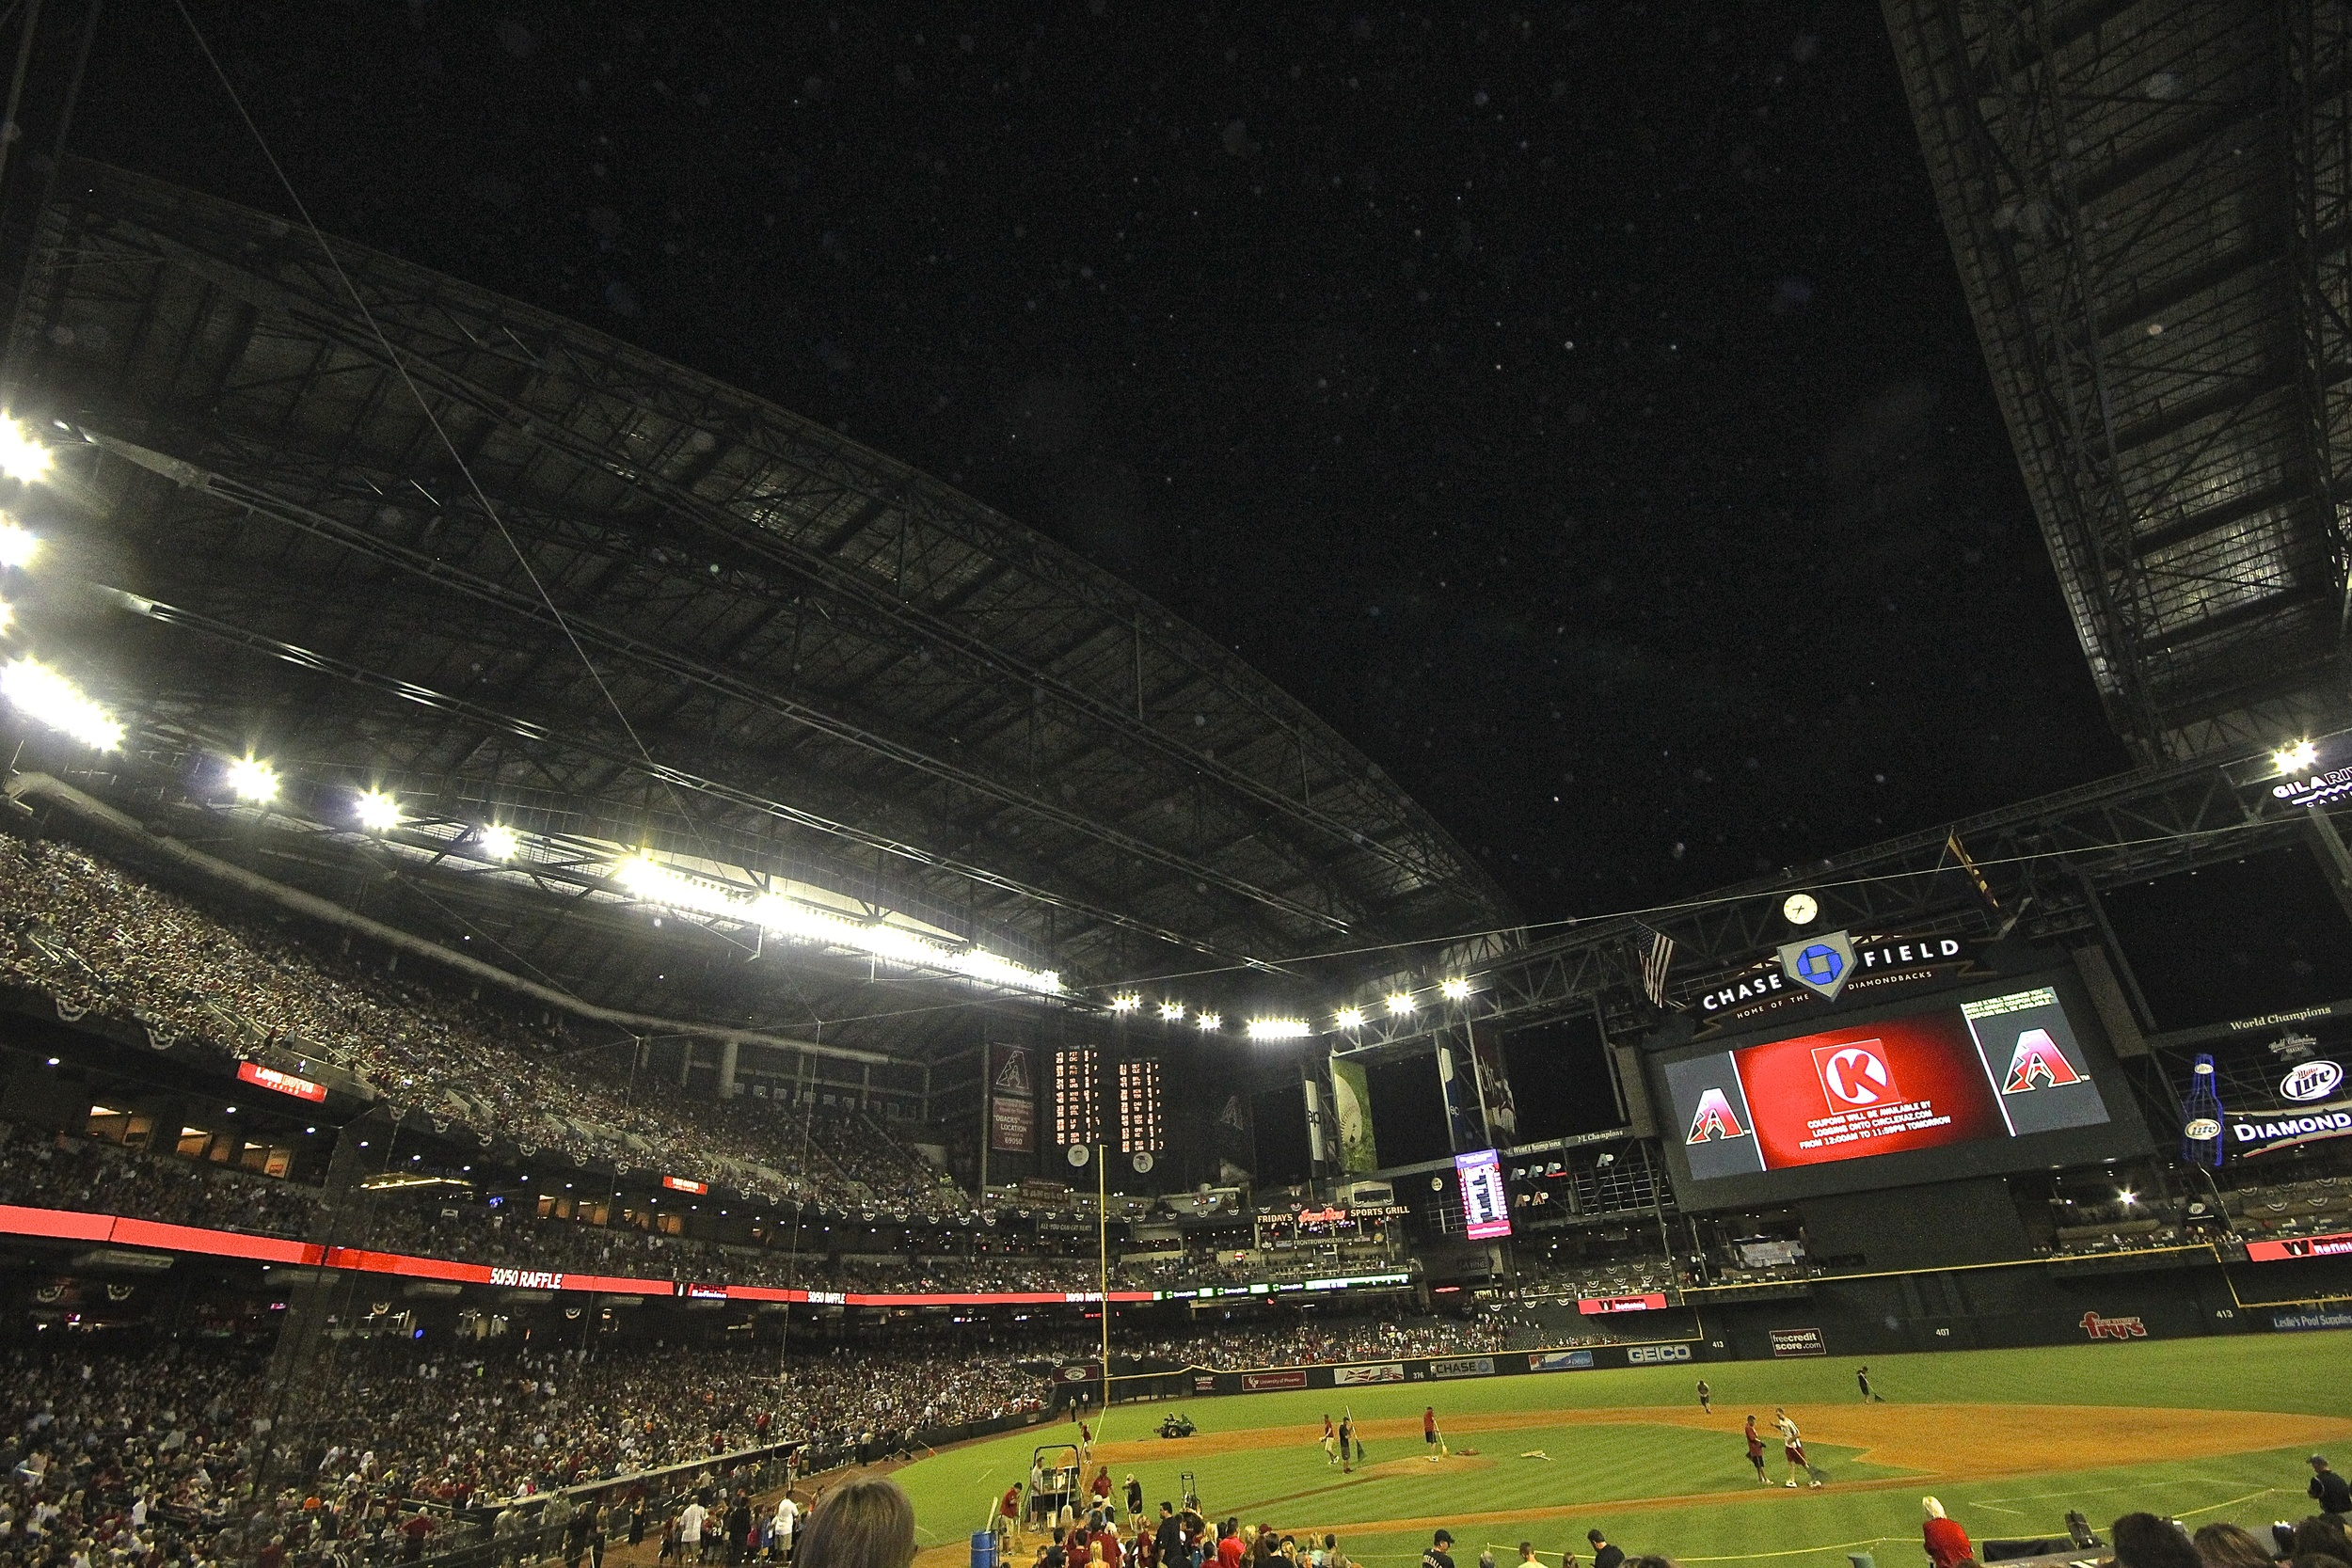 Roof opening at Chase Field